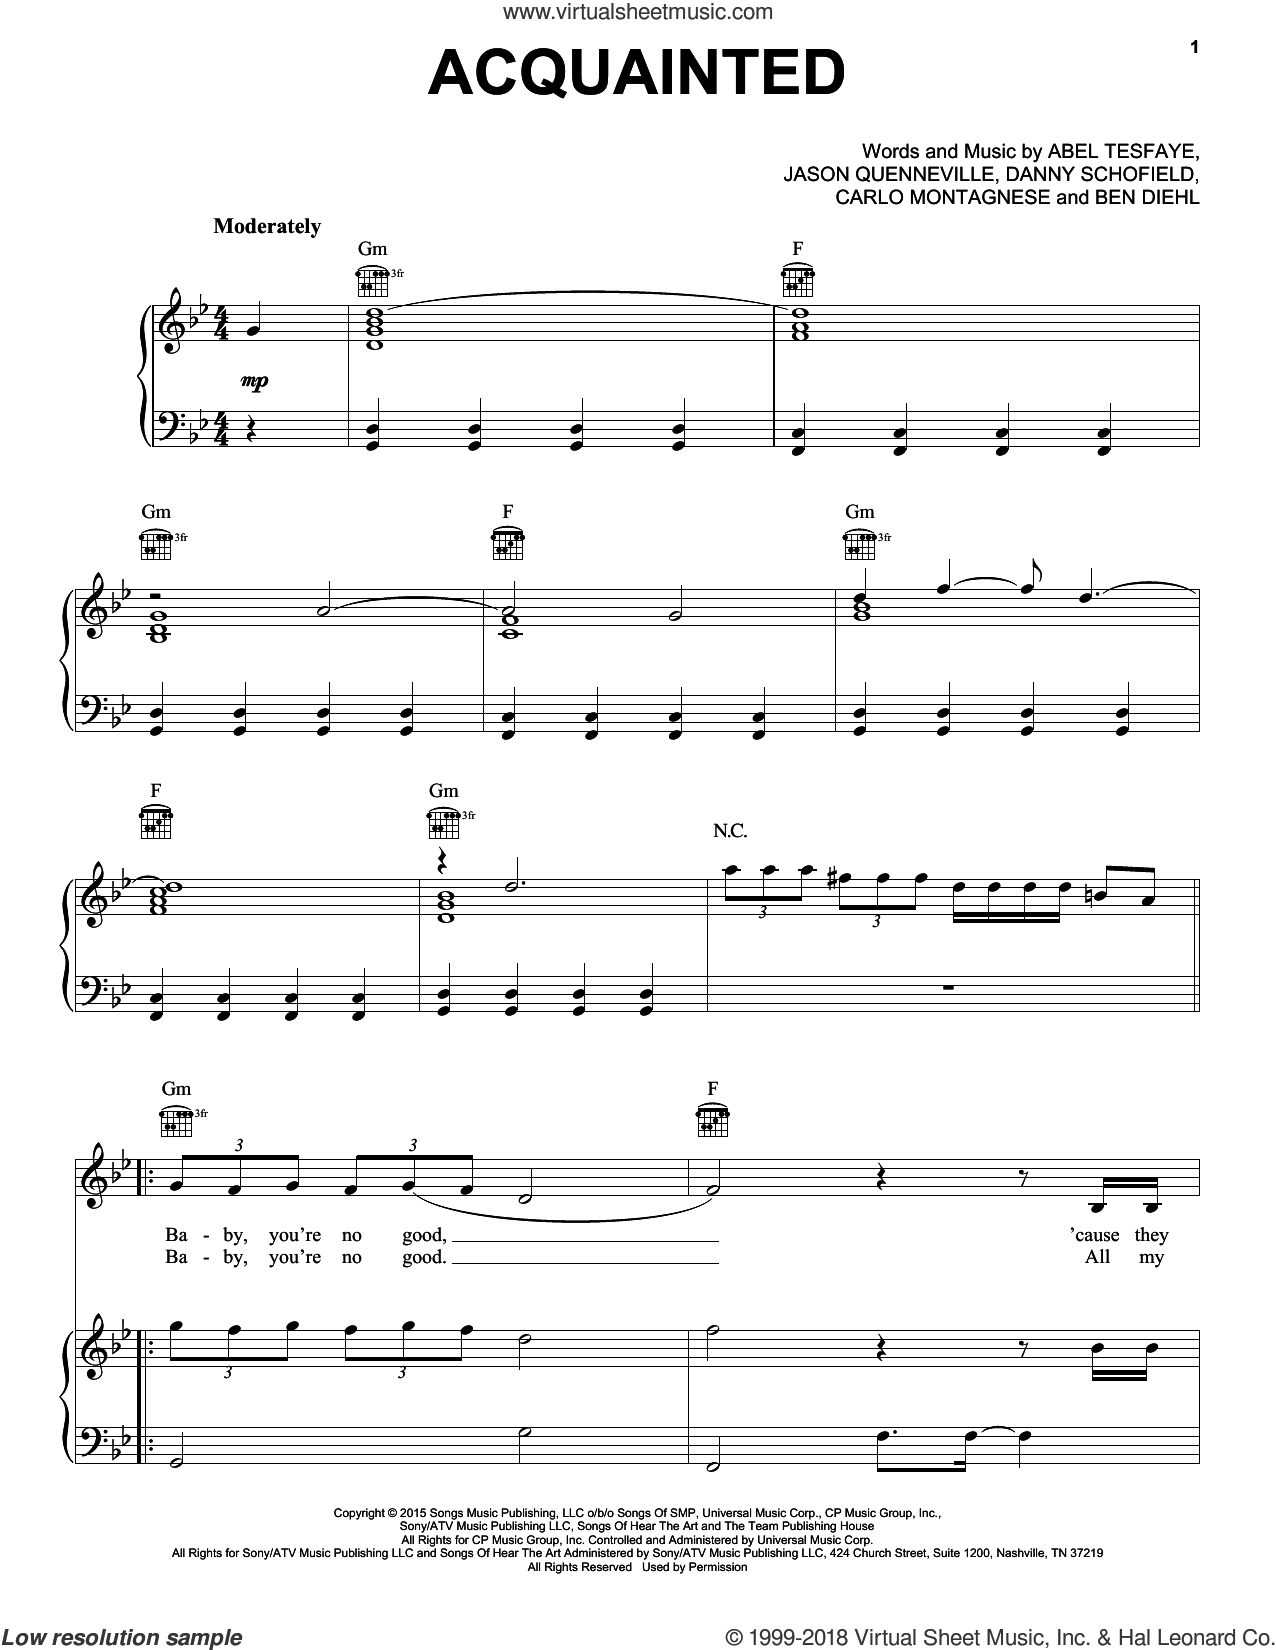 Acquainted sheet music for voice, piano or guitar by Jason Quenneville